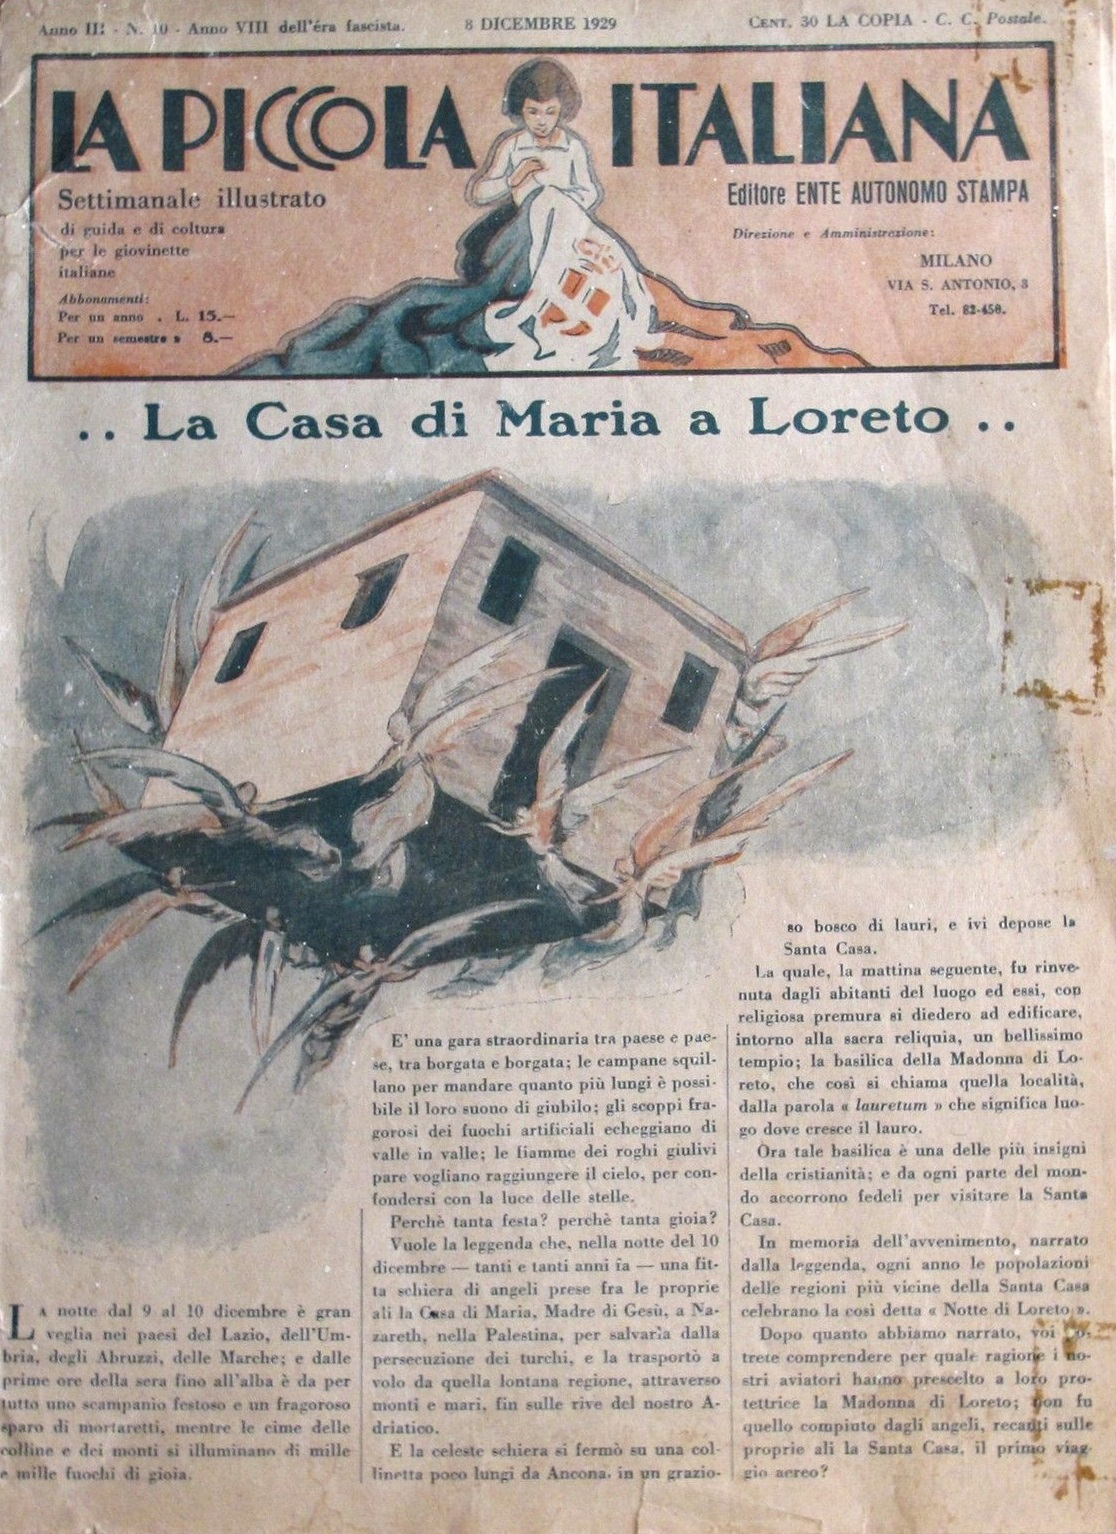 """La Piccola Italiana"" was founded in 1927. It was created to promote the fascist culture among the young girls to grow up the female model of the housewife devoted to take care of home and children."